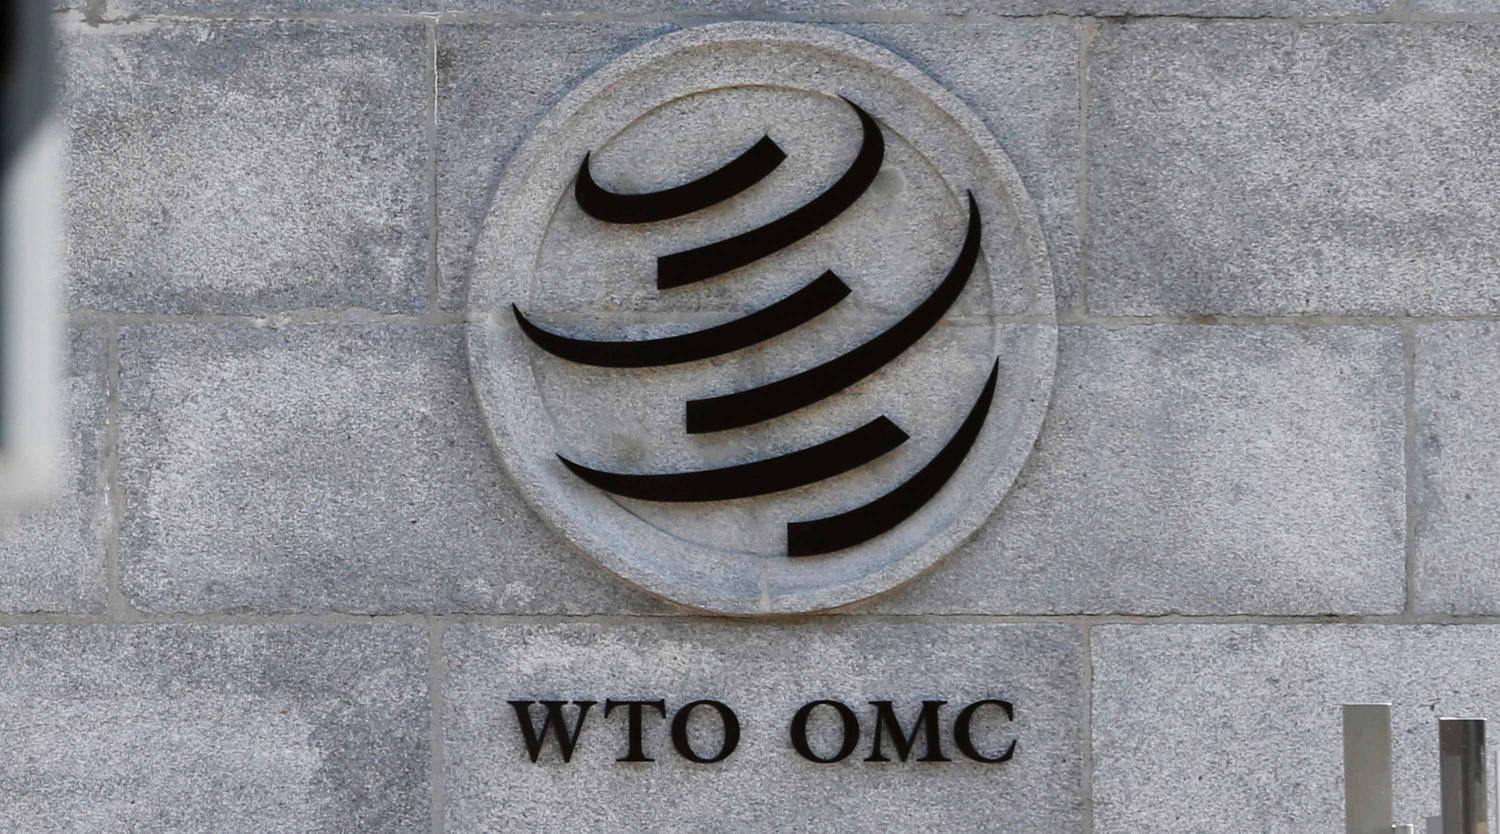 The headquarters of the World Trade Organization (WTO) are pictured in Geneva, Switzerland, April 12, 2017.